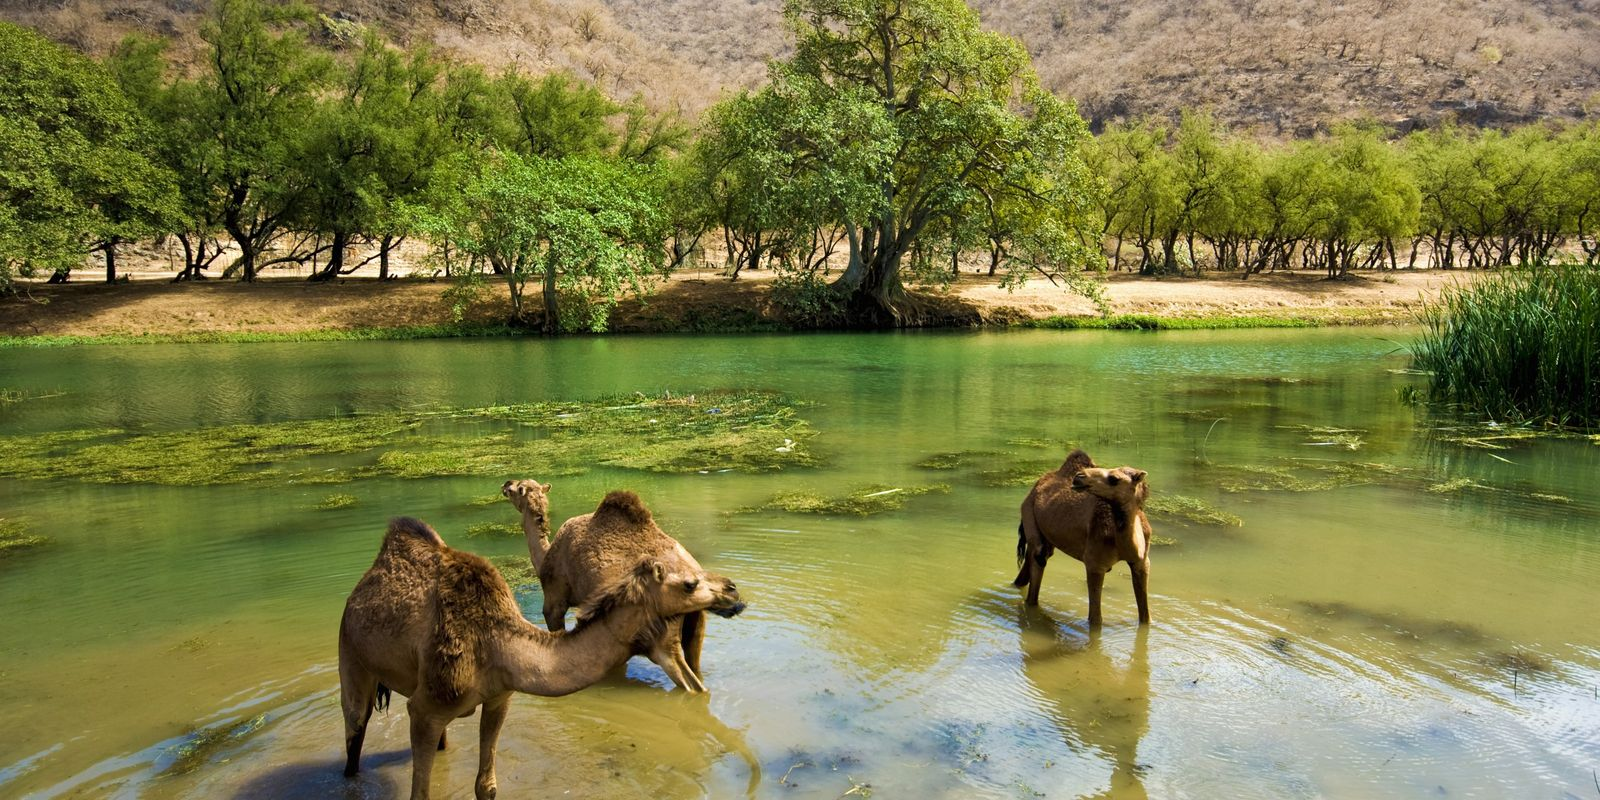 Salalah: Say goodbye to the desert